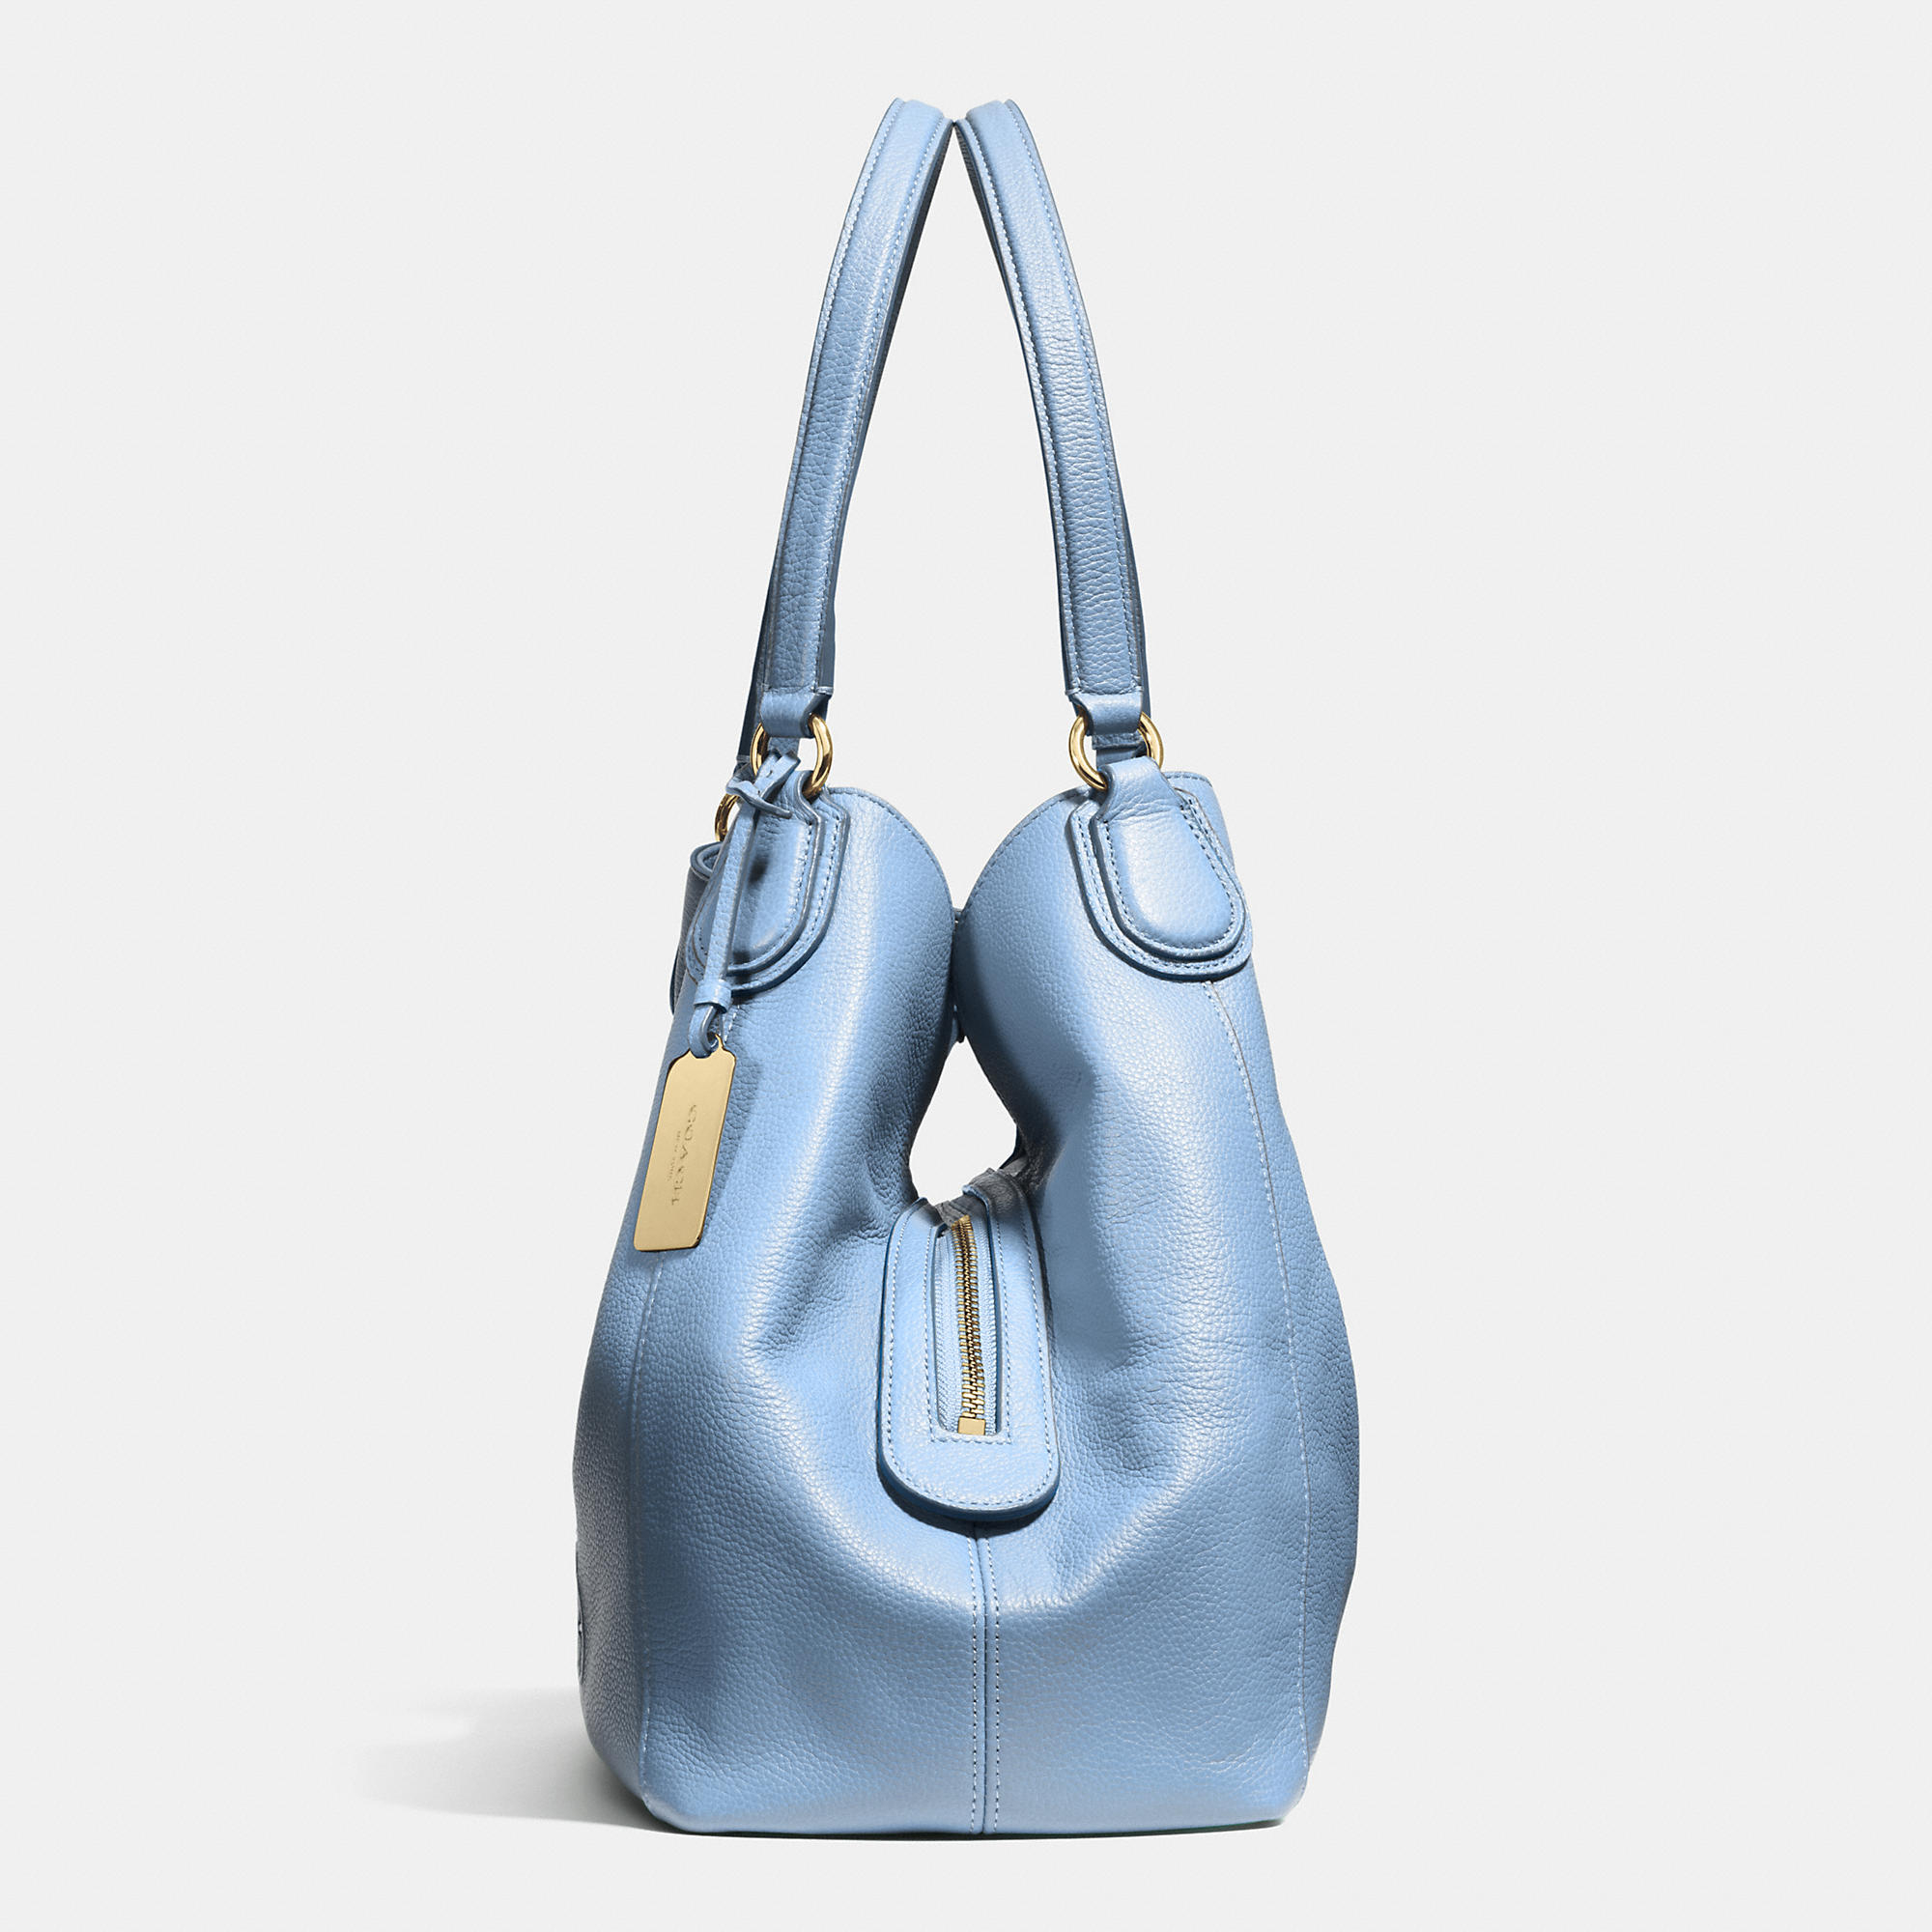 7a0b7cfa7c Lyst - COACH Embossed Horse And Carriage Edie Shoulder Bag In ...